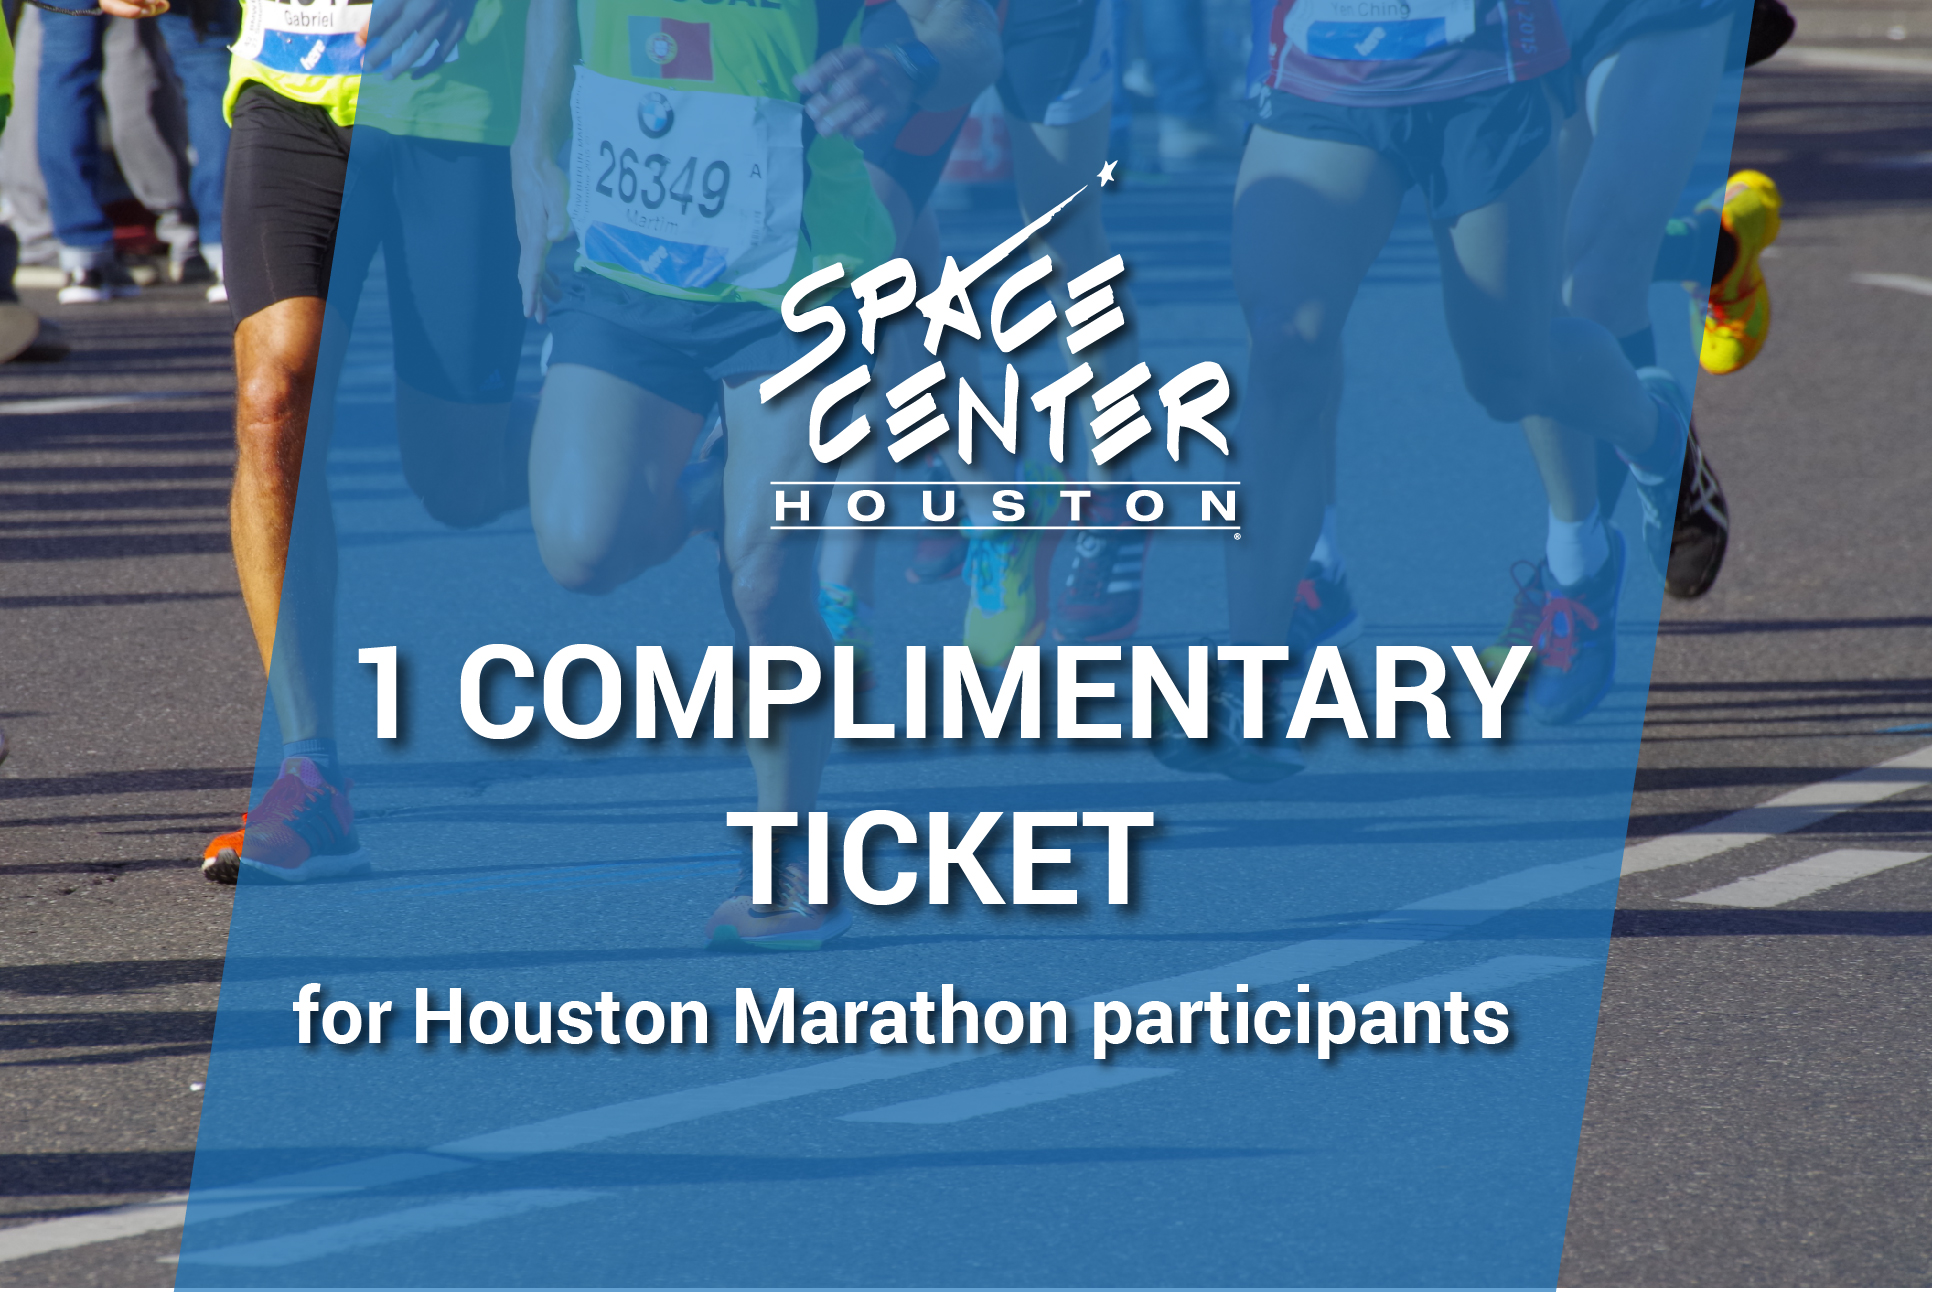 Space Center Houston Free Ticket